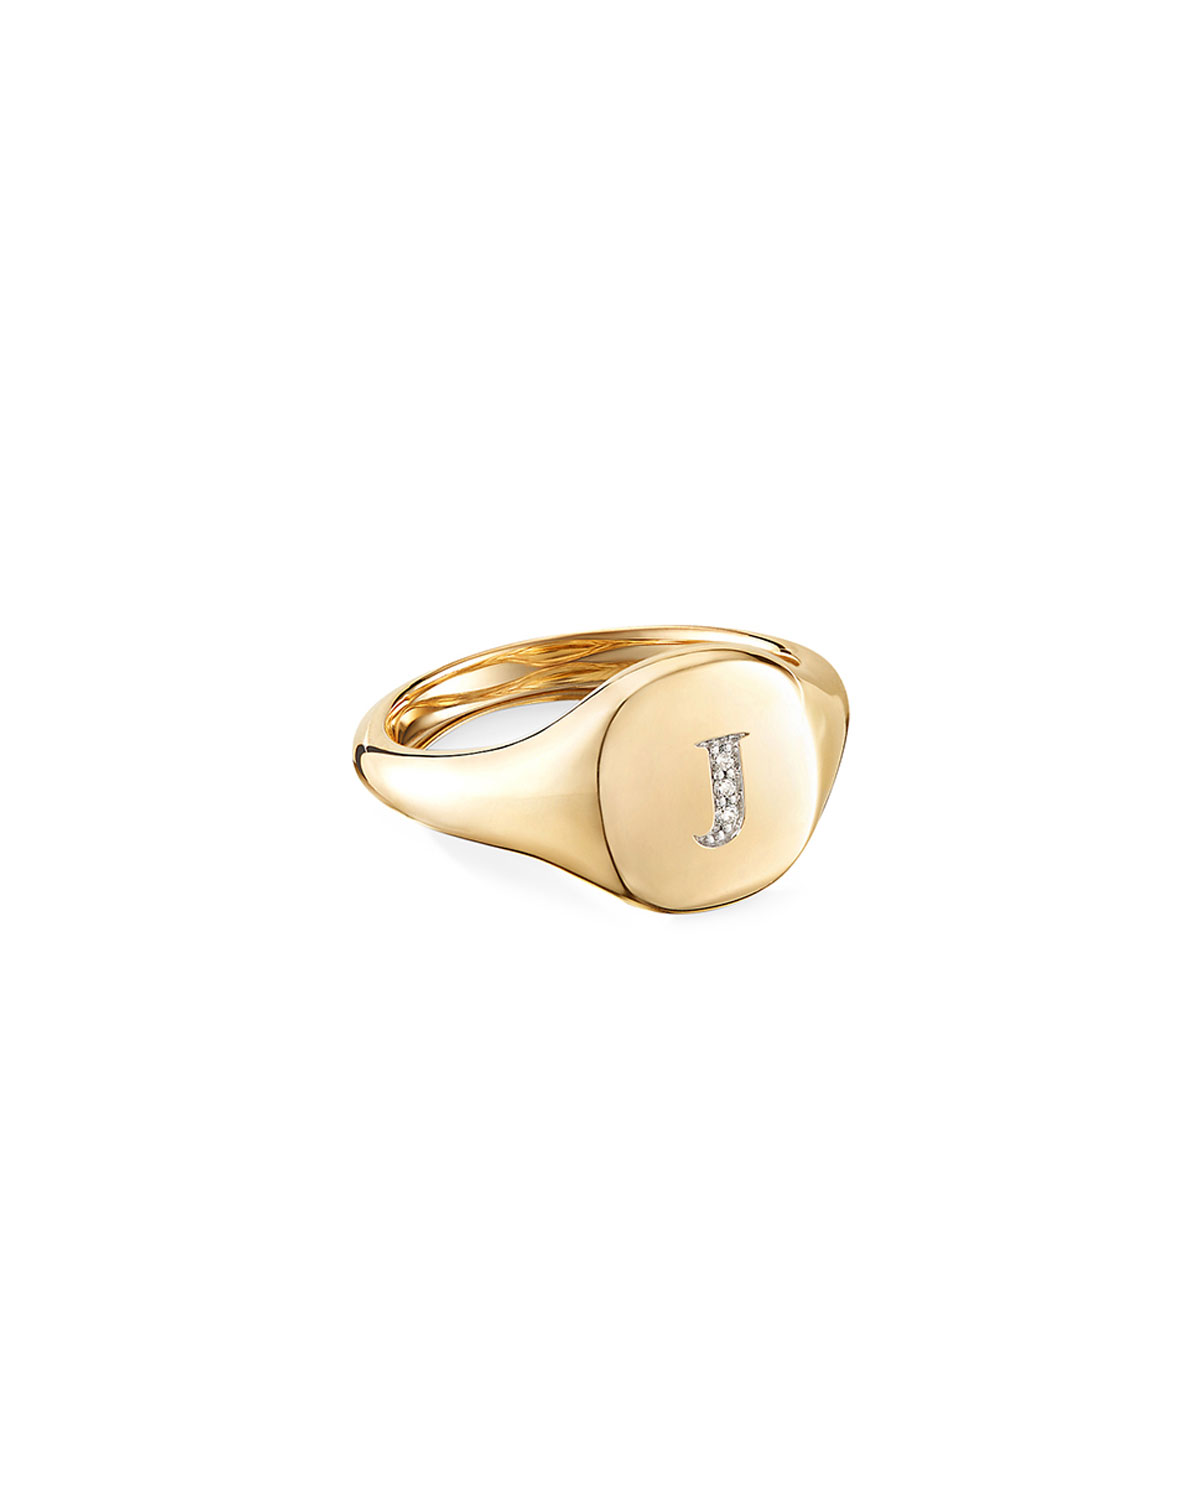 David Yurman Mini DY Initial J Pinky Ring in 18K Yellow Gold with Diamonds, Size 4.5